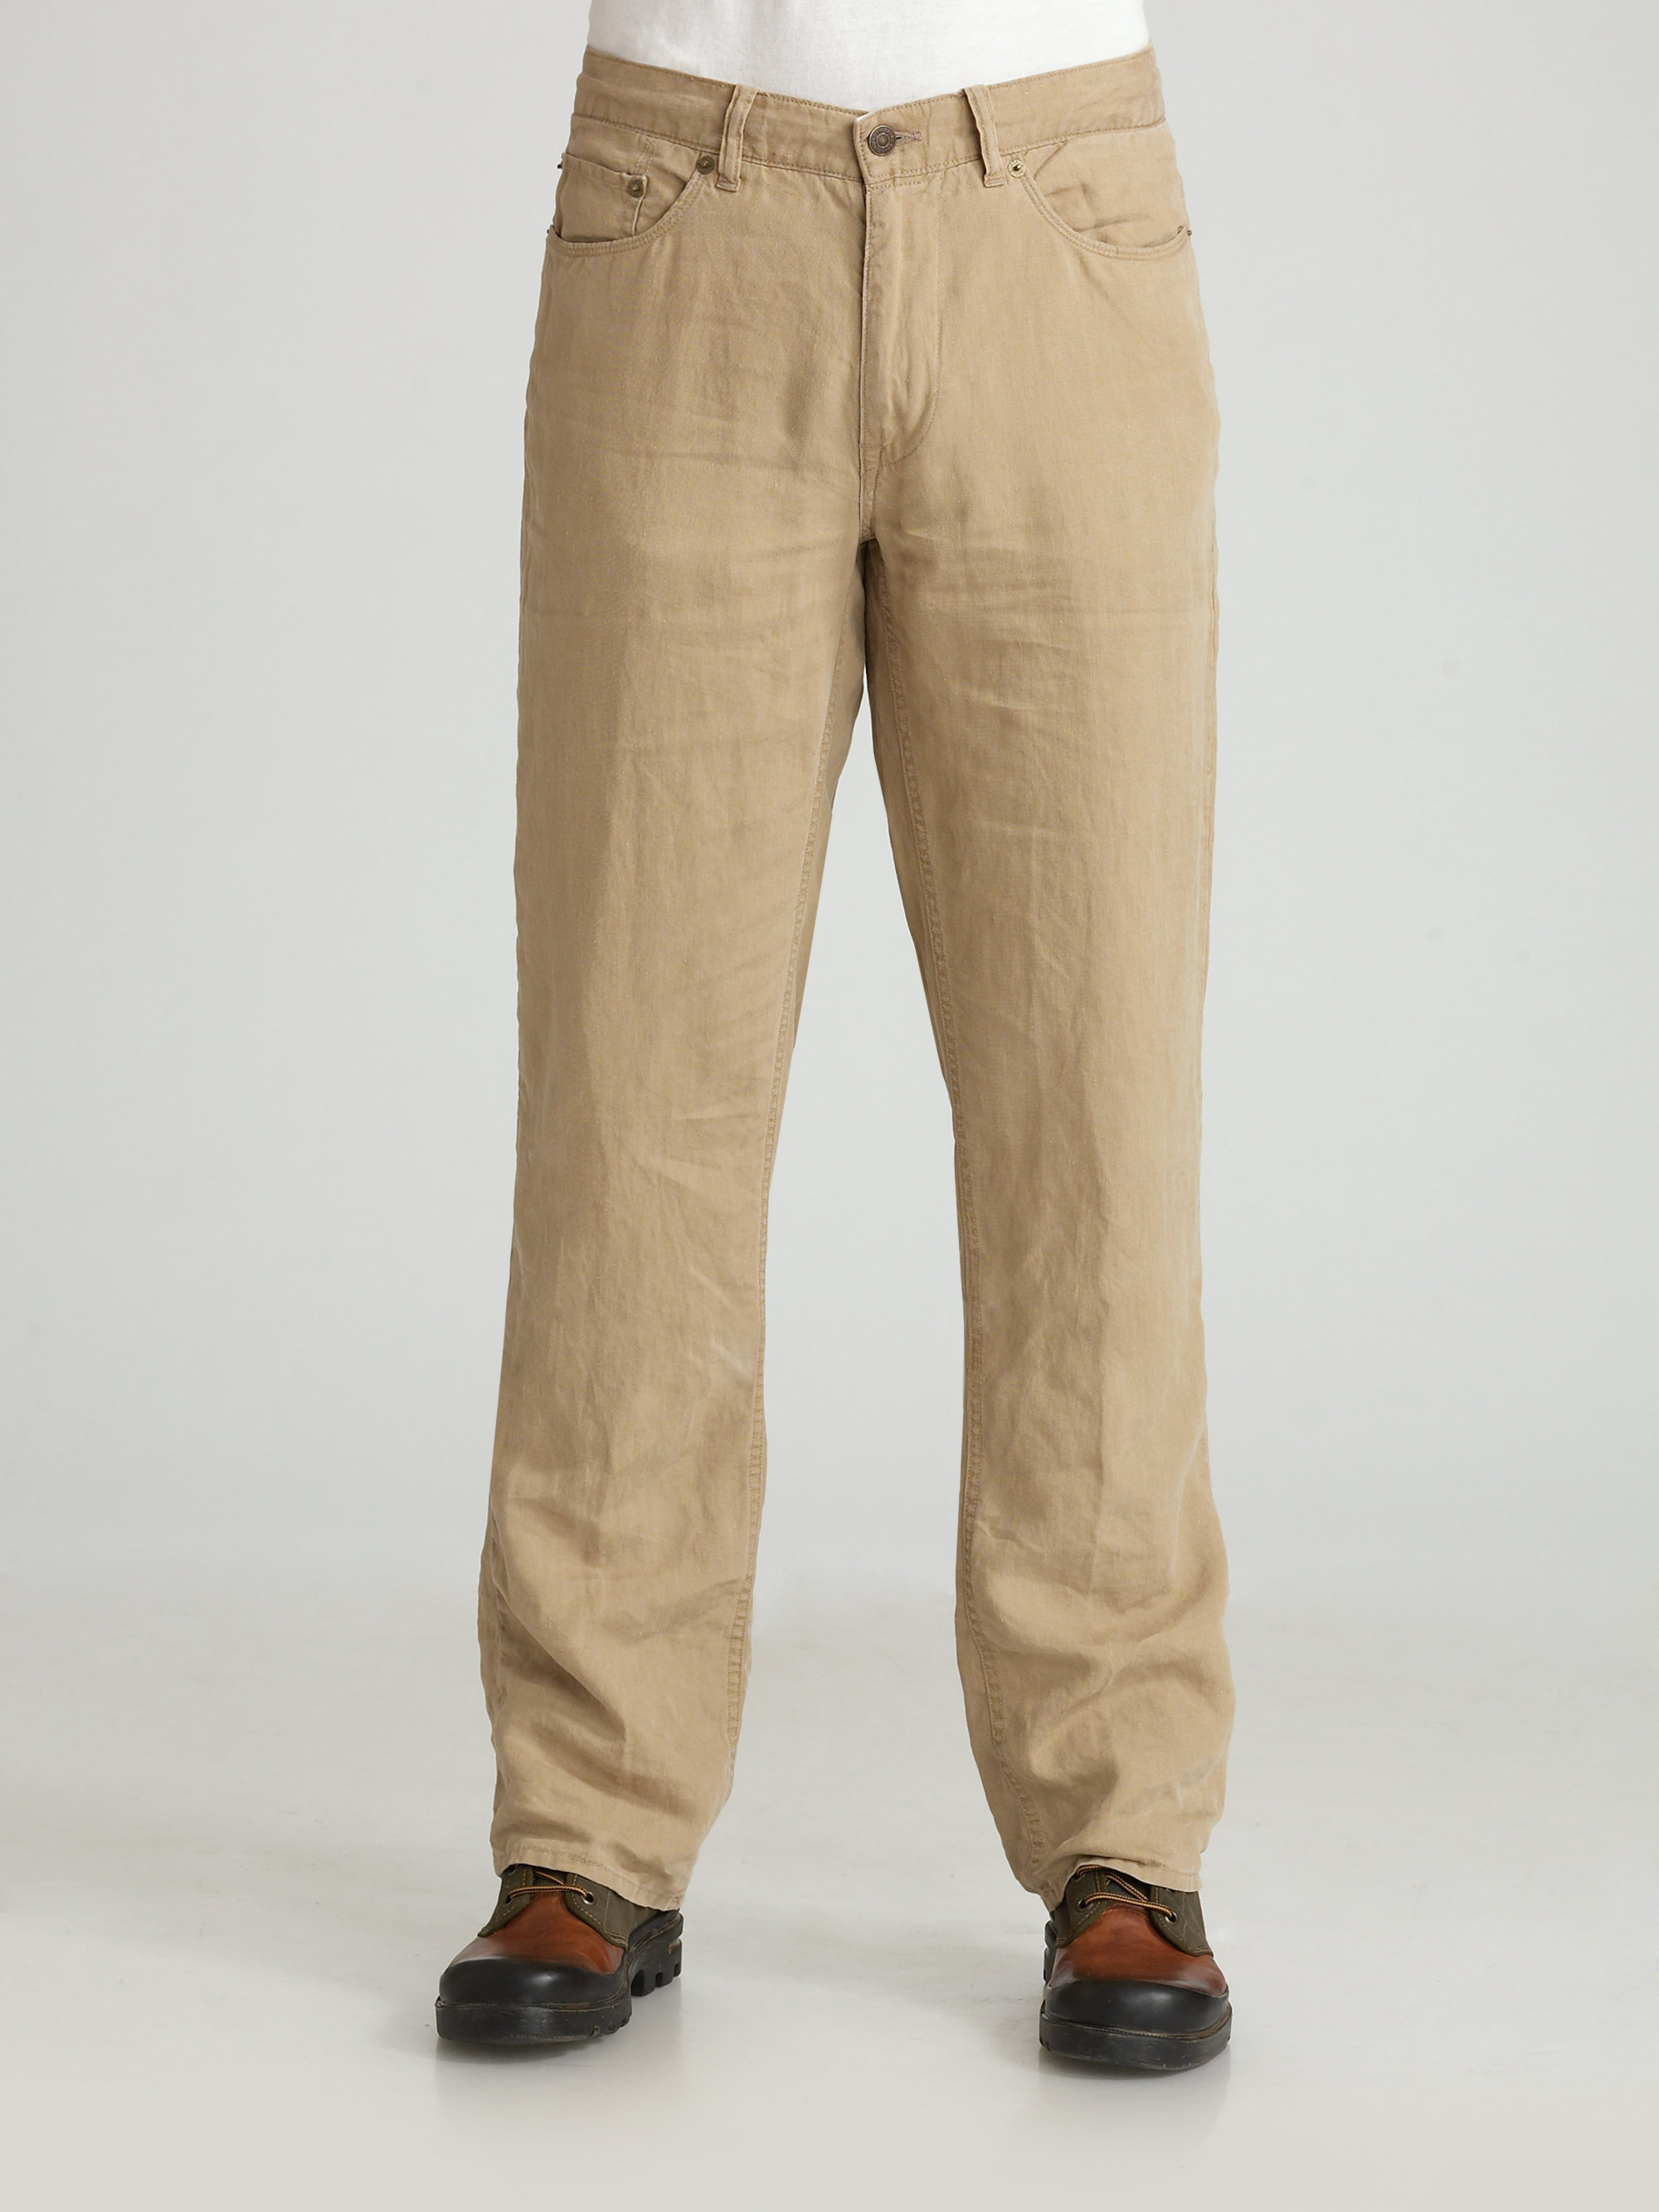 Polo ralph lauren Linen Pants in Natural for Men | Lyst